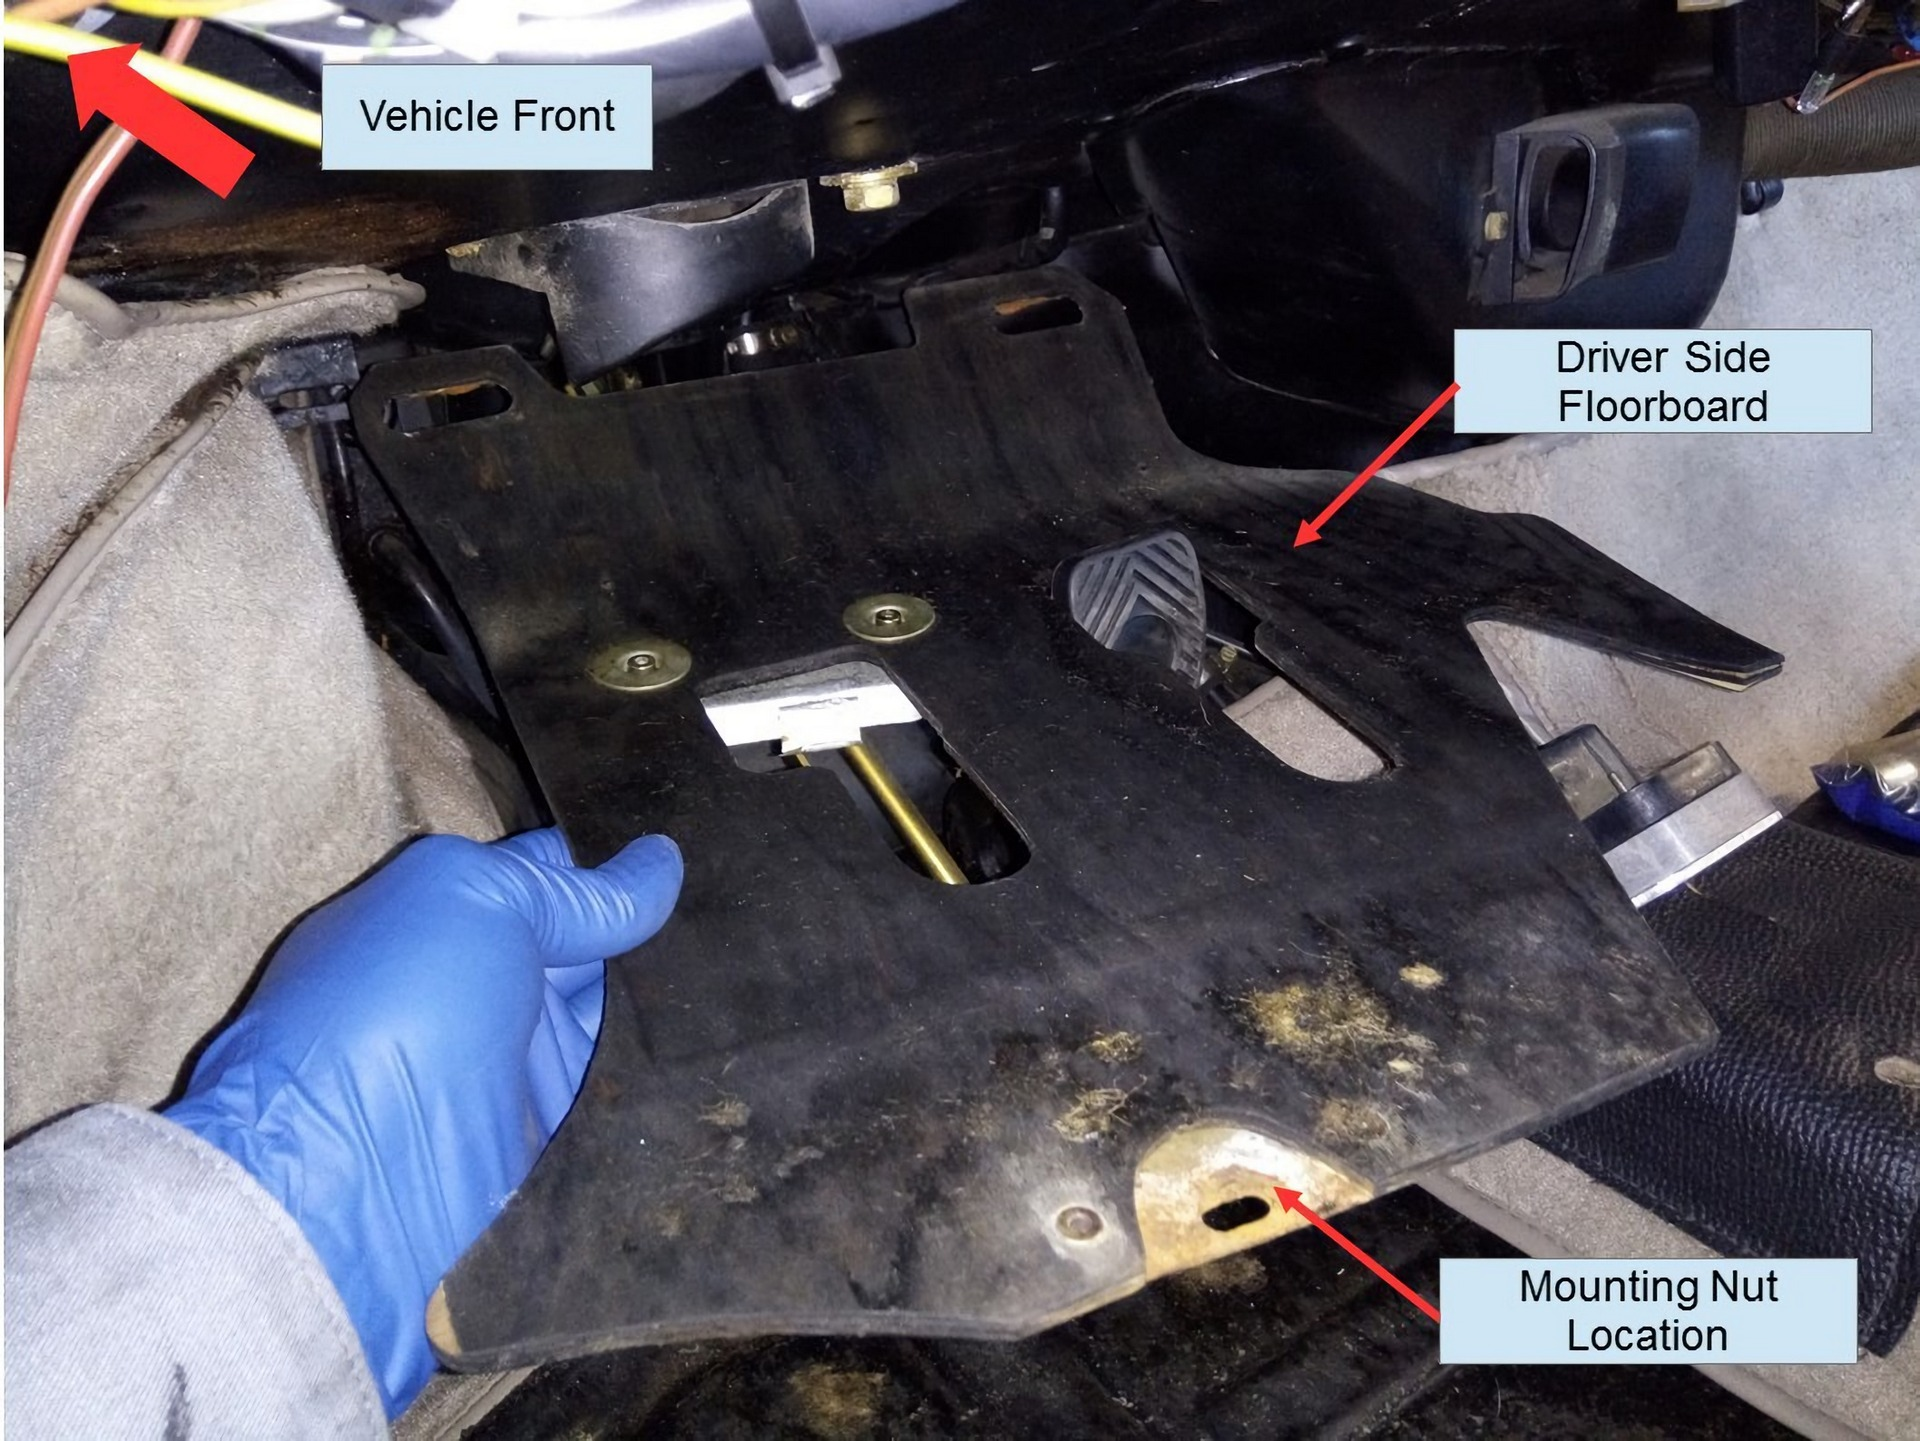 How To Rebuild The Pedal Cluster On An Air-Cooled Porsche 911